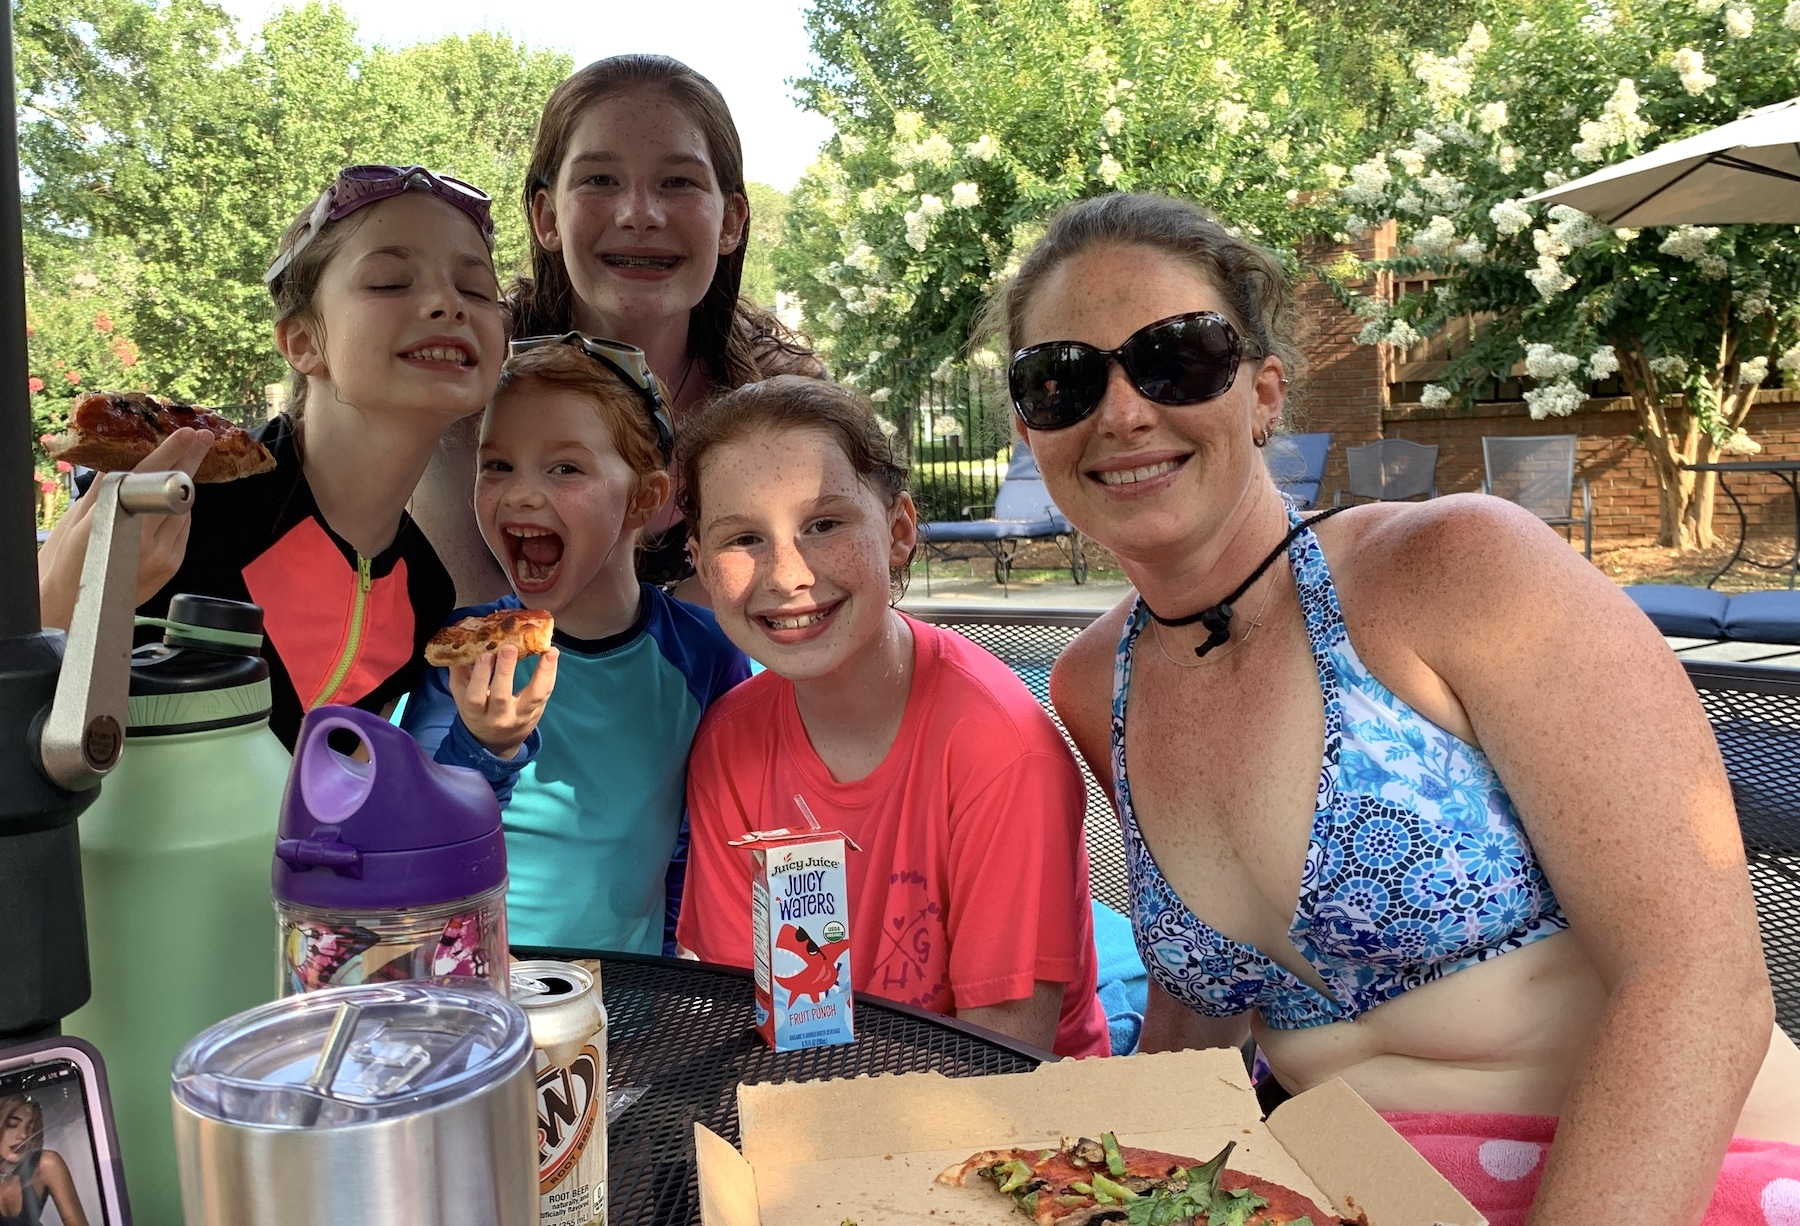 pizza and pool family fun